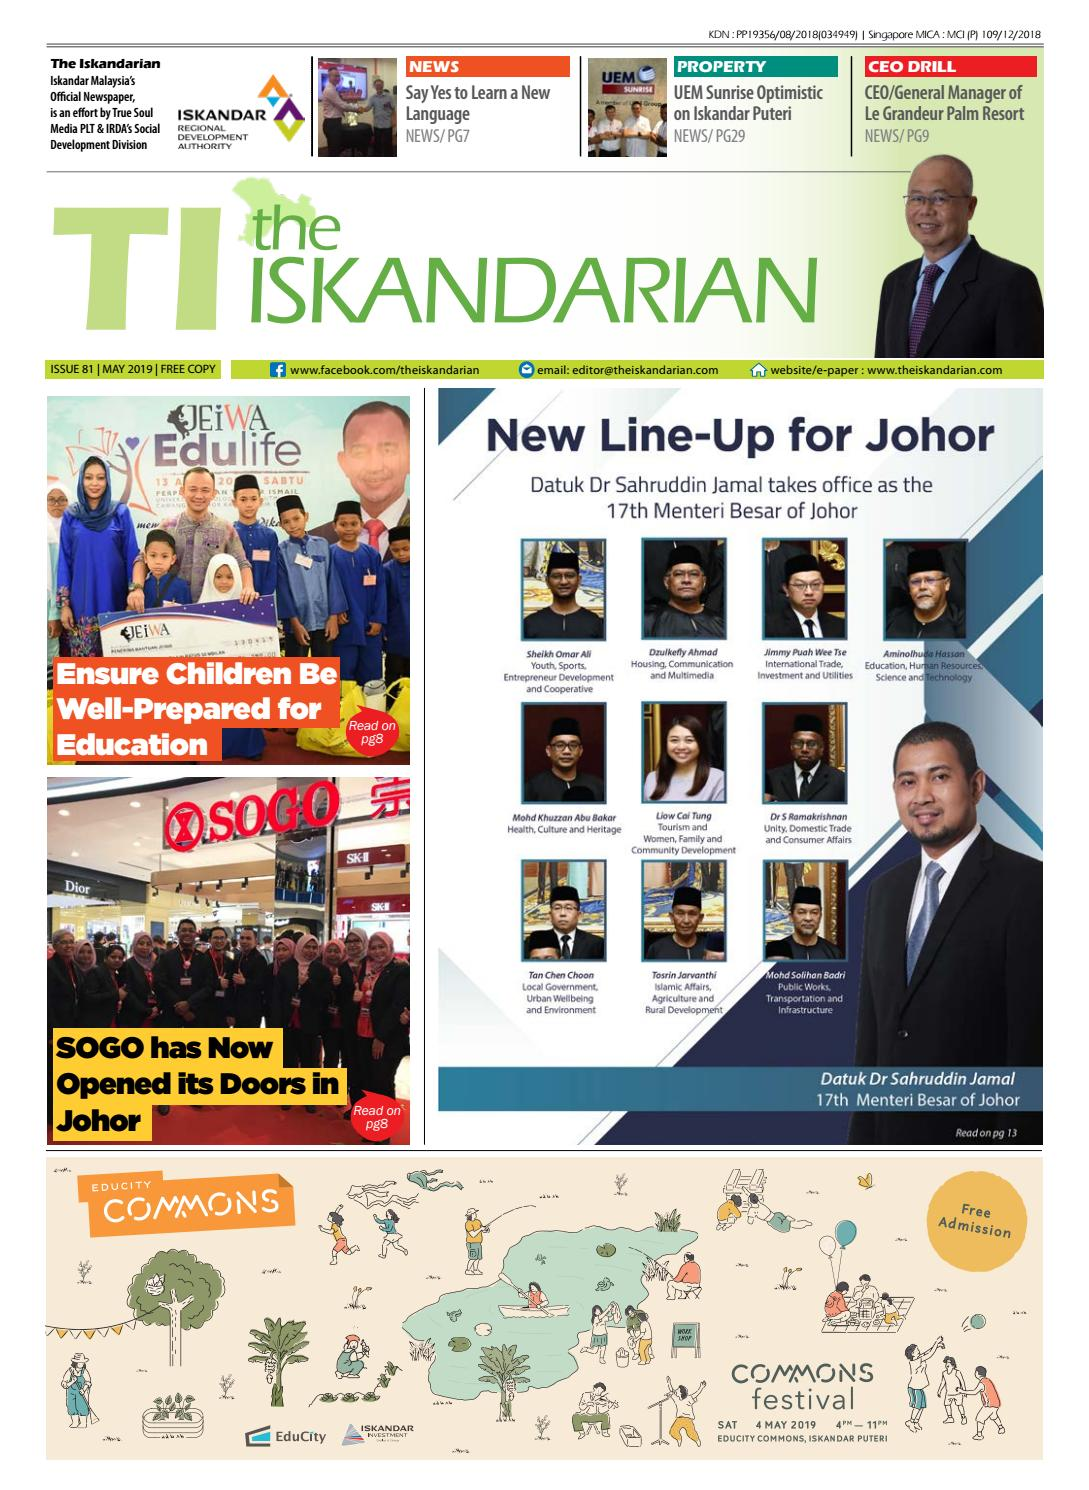 The Iskandarian E-Paper May 2019 by The Iskandarian-WAVES Lifestyle